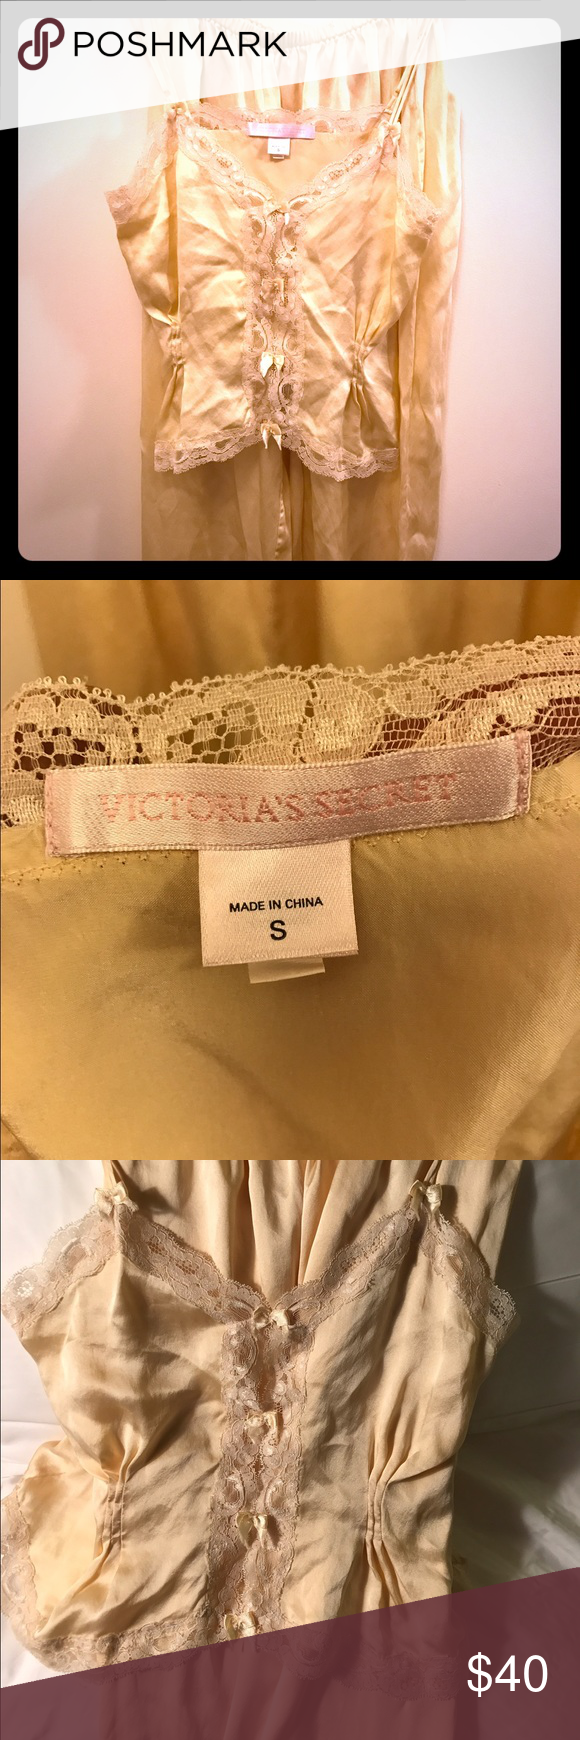 Victoria's Secret 100% Silk Pajamas Set 2/4 Pure luxury! Romantic pale yellow silk Victoria's Secret PJs set with camisole and pants. Great for Valentines Day! Size S Chest: 36 Waist: 28 Hip: 33-36 Length: 43 inches Victoria's Secret Intimates & Sleepwear Pajamas